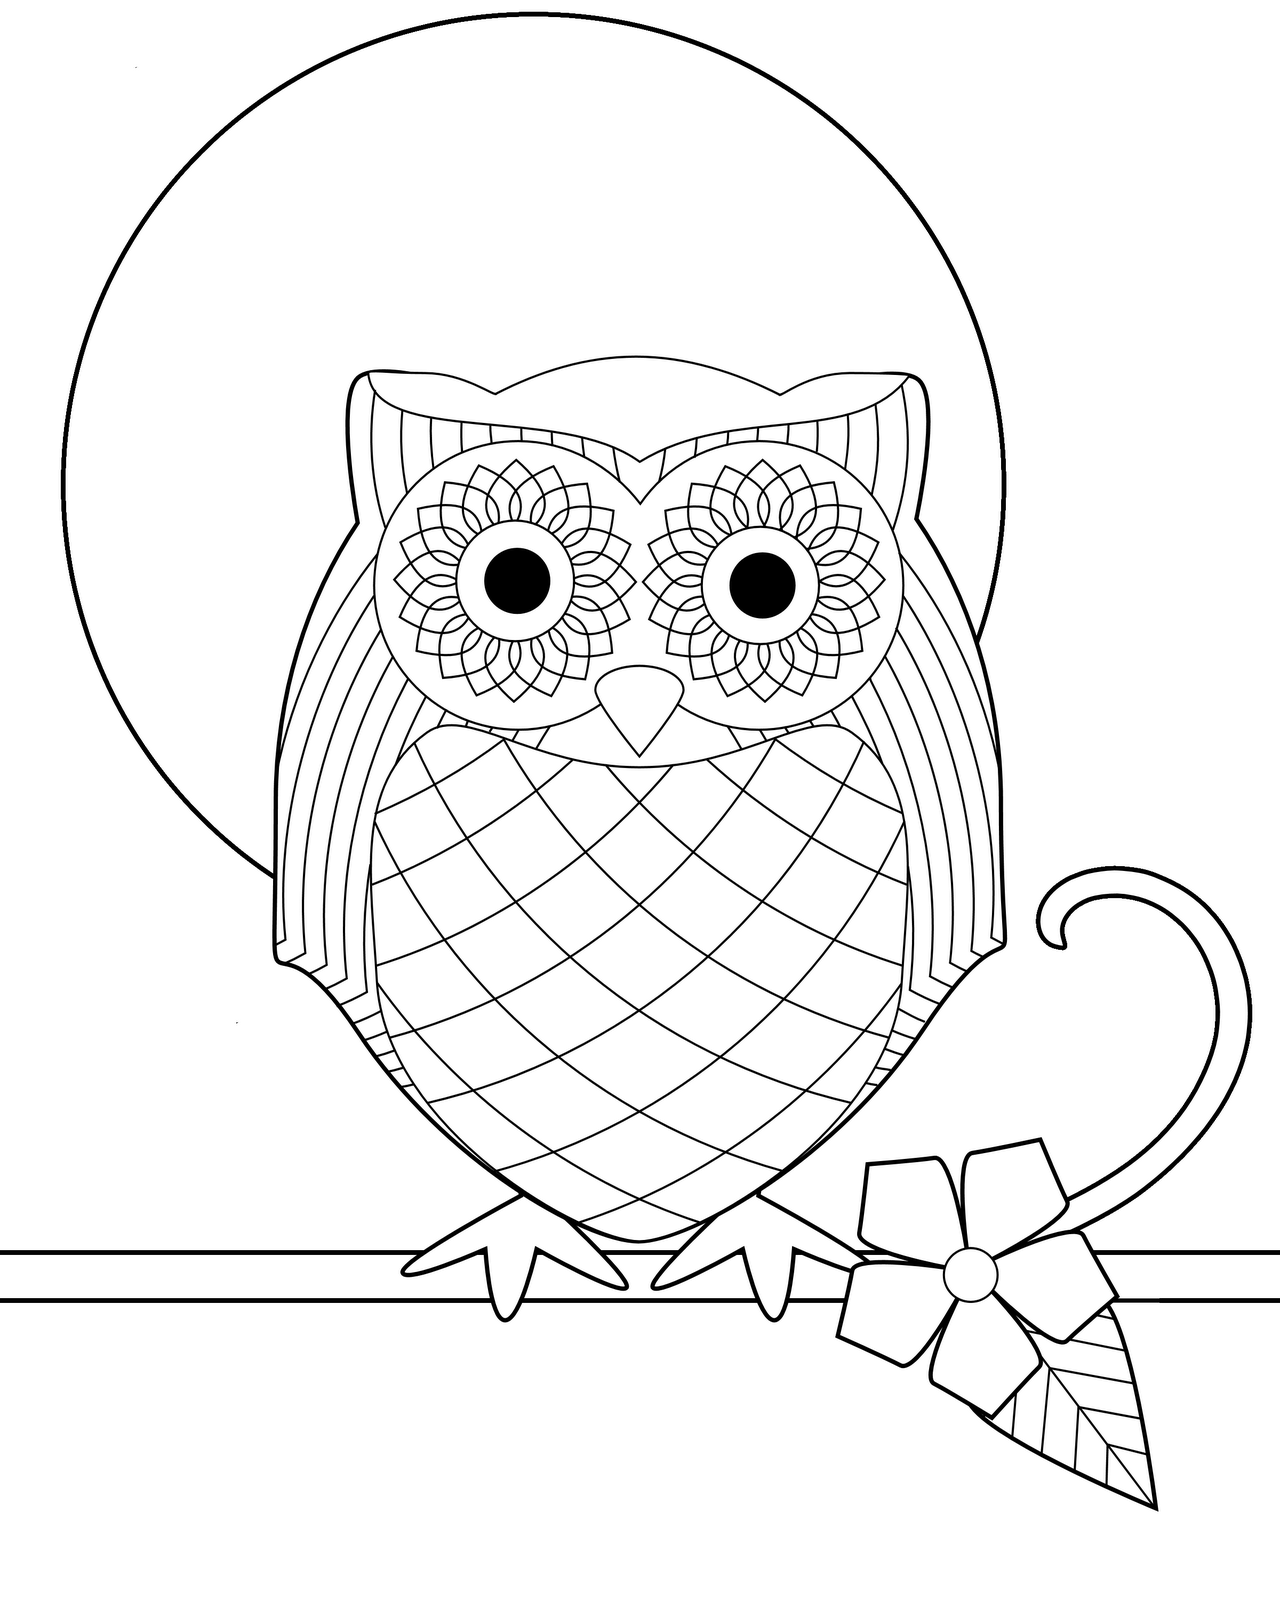 Owl Coloring Pages Interesting Free Printable Owl Coloring Pages For Kids